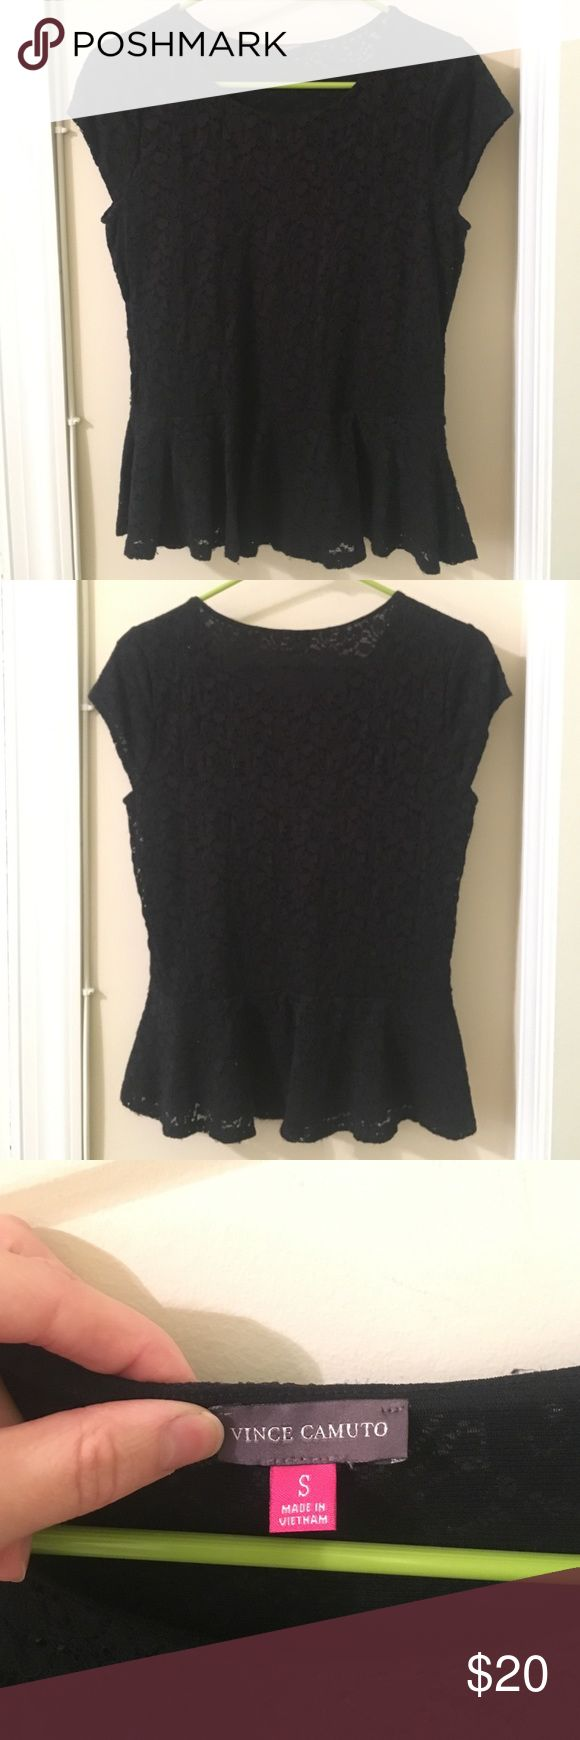 Vince Camuto Black Peplum Top Black lace peplum top. Size S. Rarely worn. Vince Camuto Tops